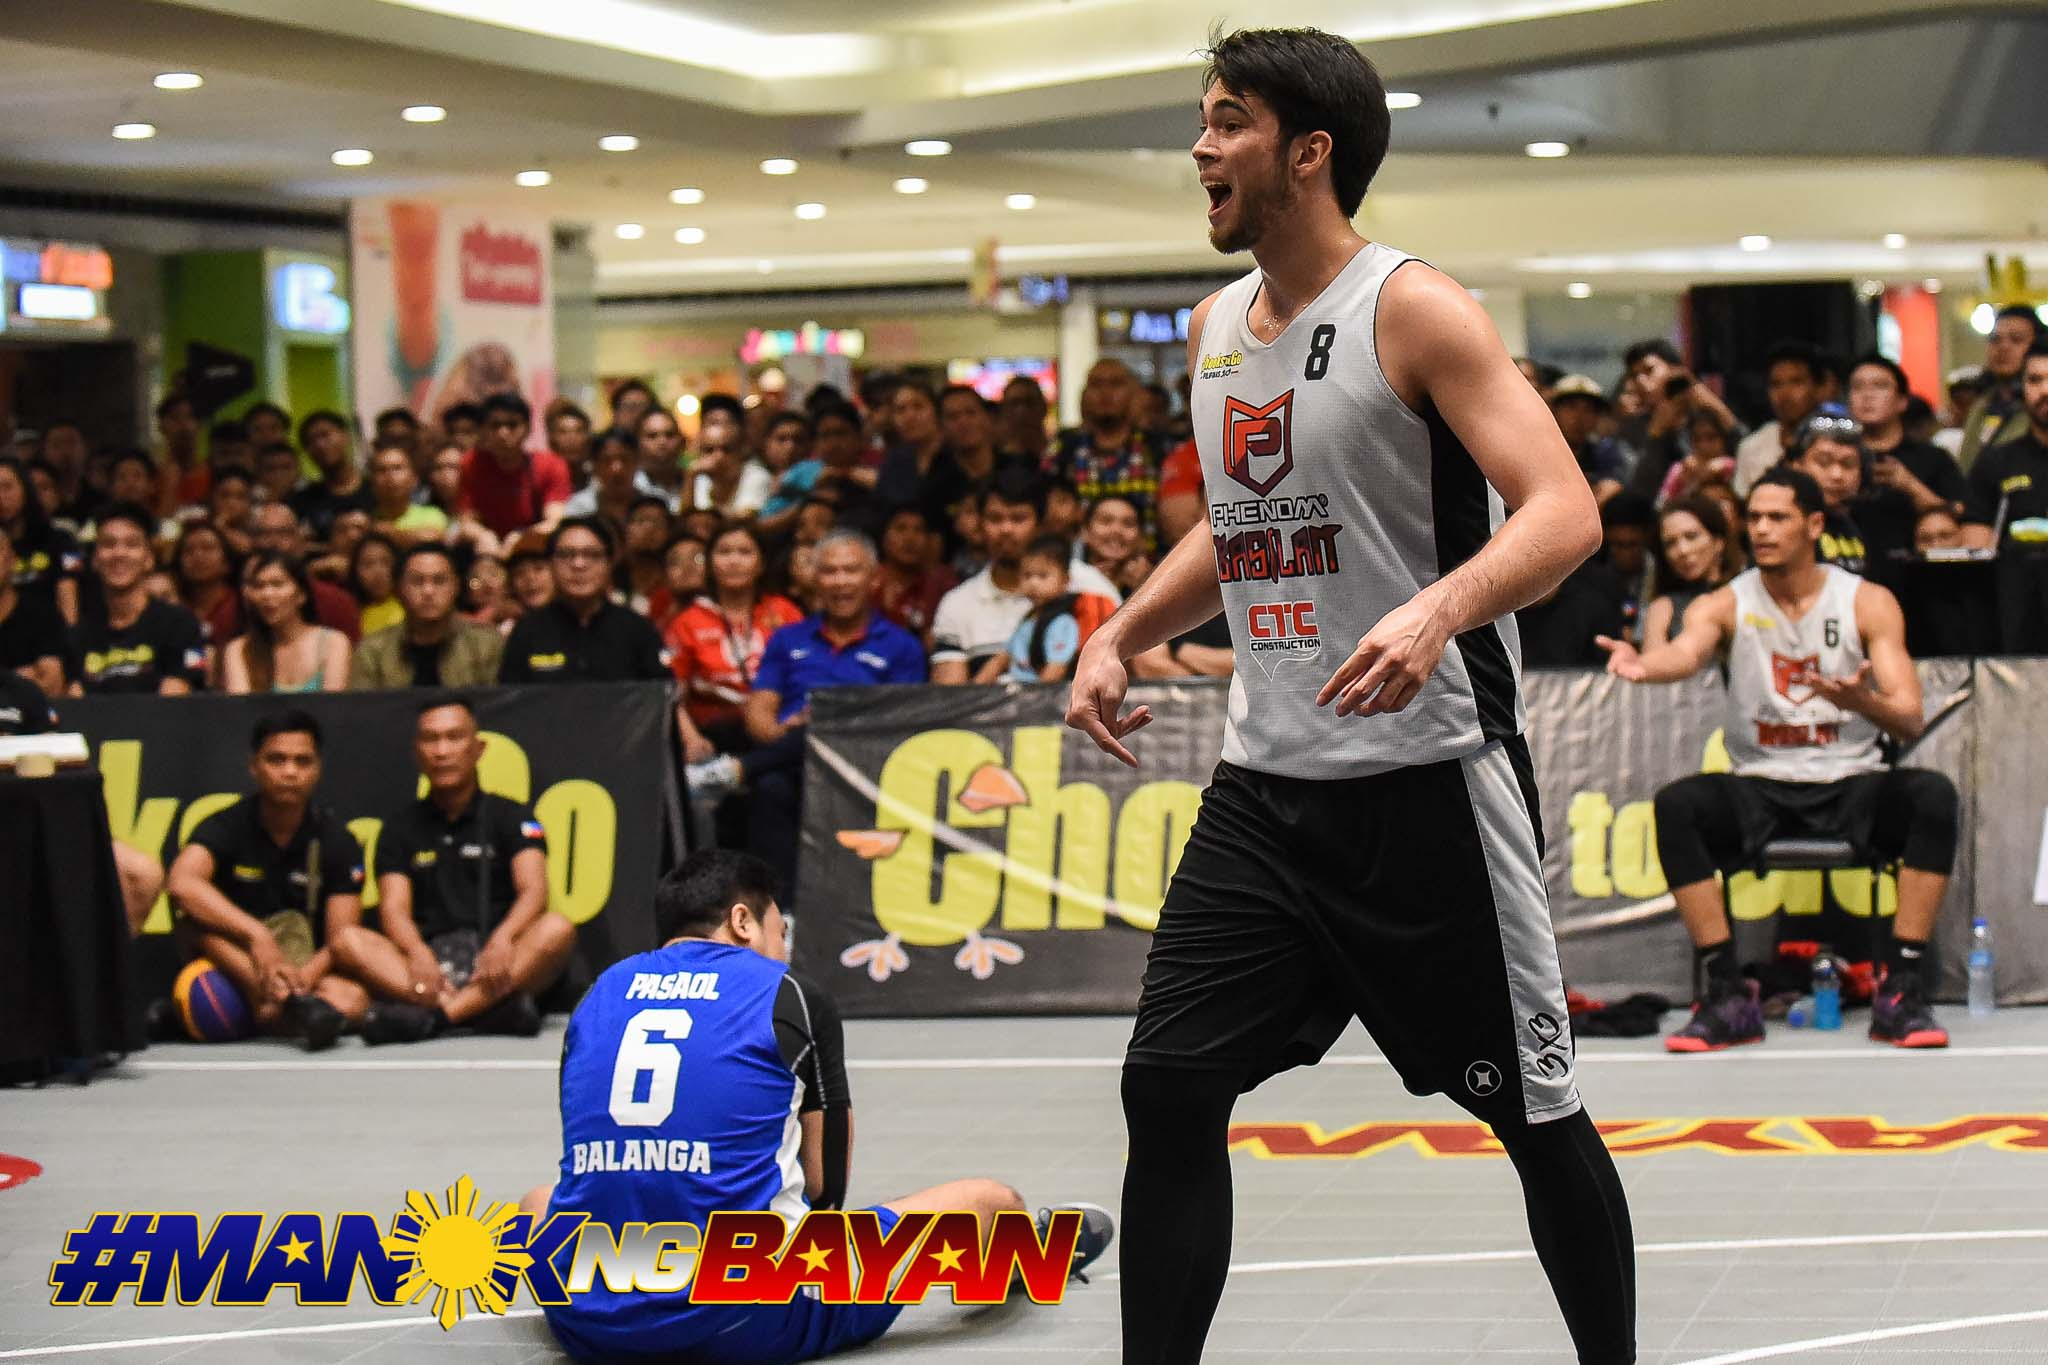 Chooks-3x3-Grand-Finals-Rike-6782 Munzon, Pasaol, Rike, Santillan leave Chooks 3x3, enter 2021 PBA Draft 3x3 Basketball Basketball Chooks-to-Go Pilipinas 3x3 News PBA  - philippine sports news